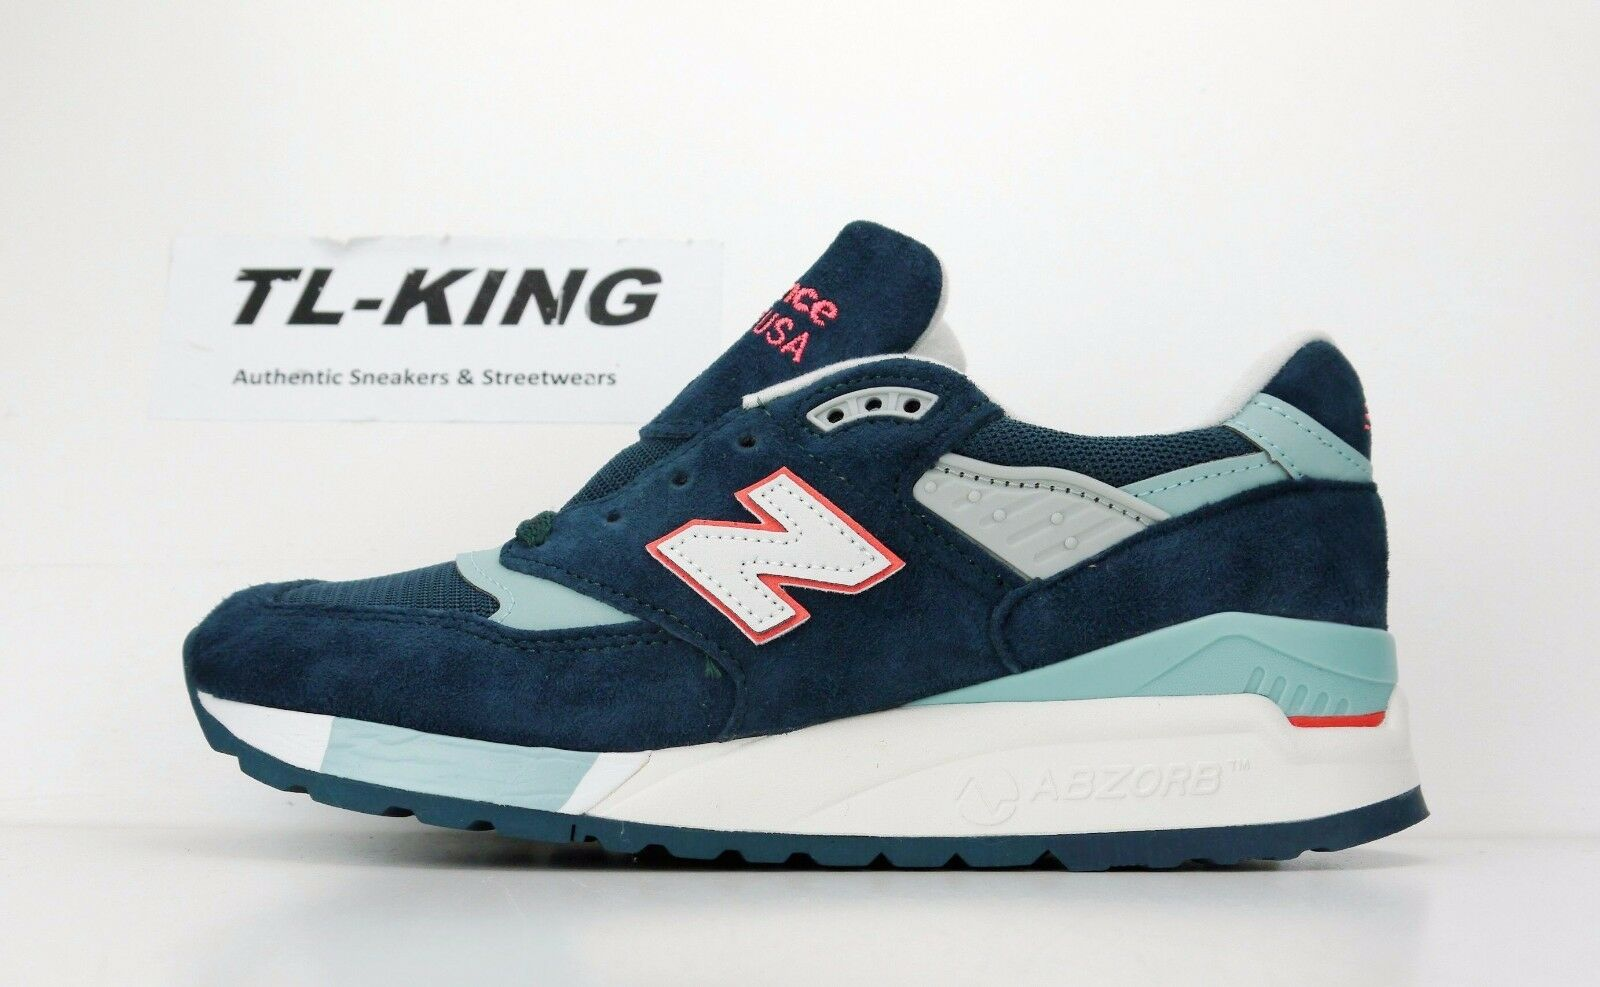 ny balans W998CHT blå Tornado Storm kvinnor Made in USA Limited Msrp  180 KK